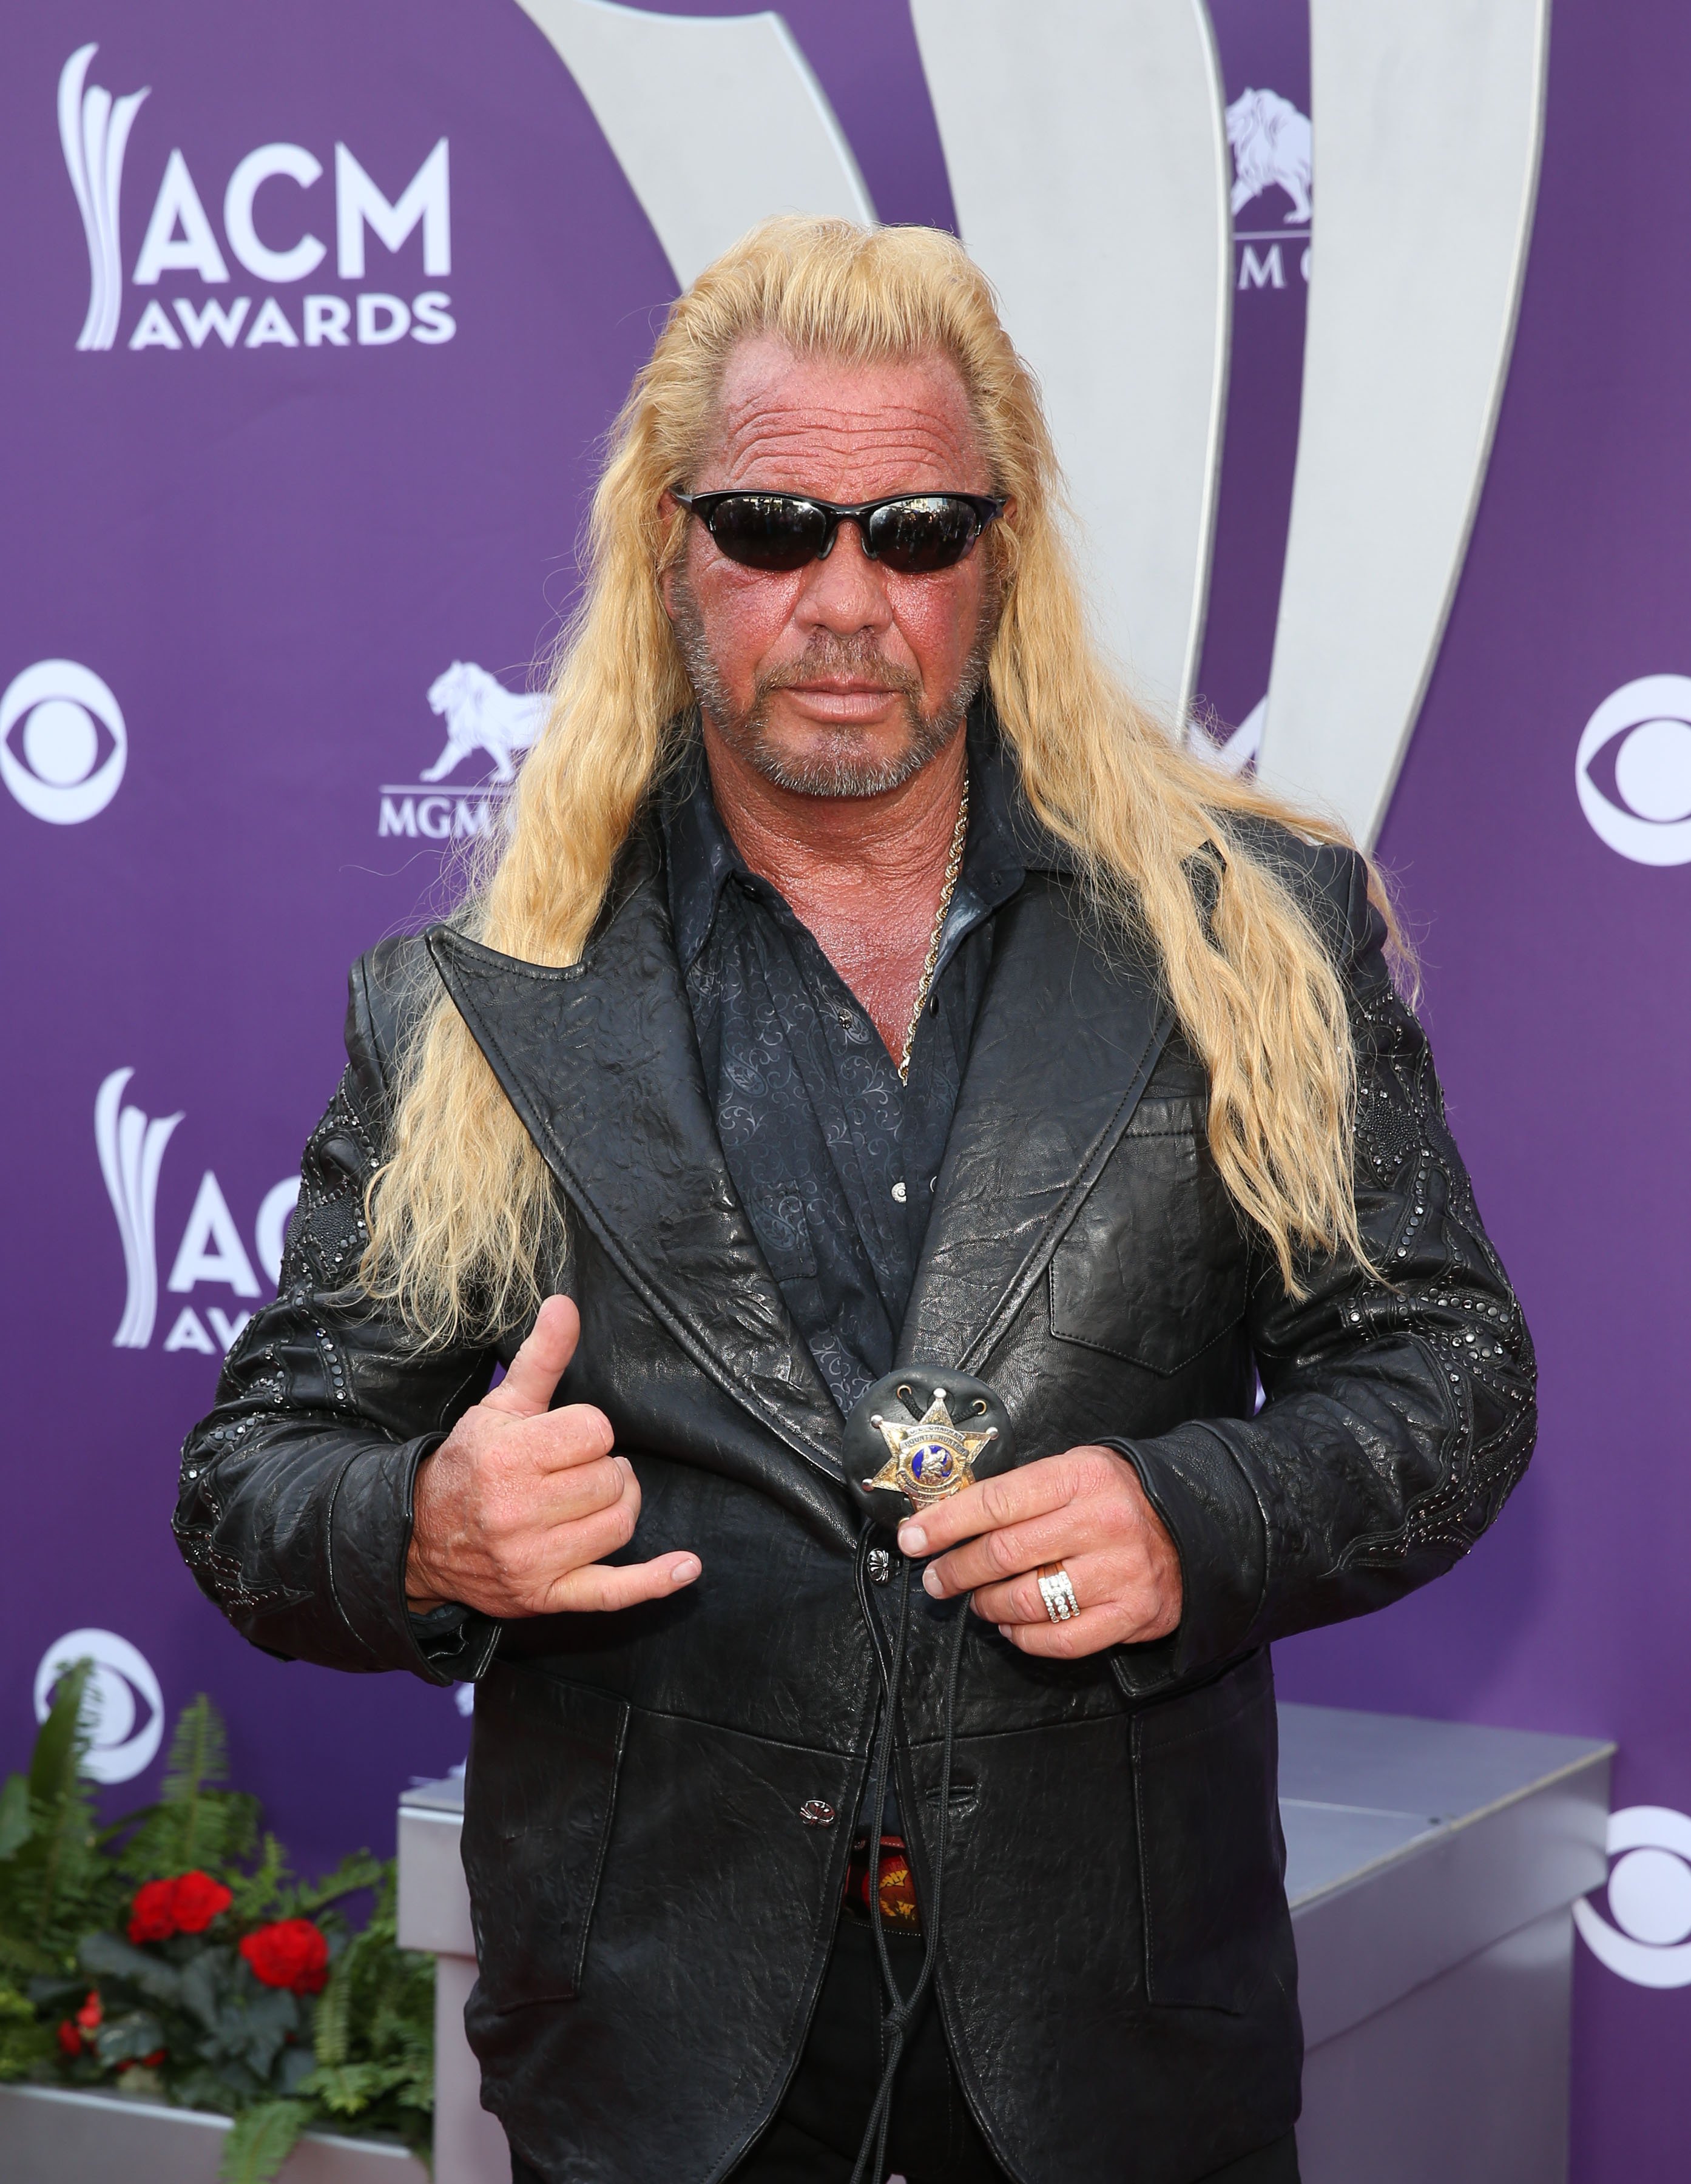 Duane 'Dog' Chapman Heads Home After Heart Emergency Scare Sent Him to the Hospital